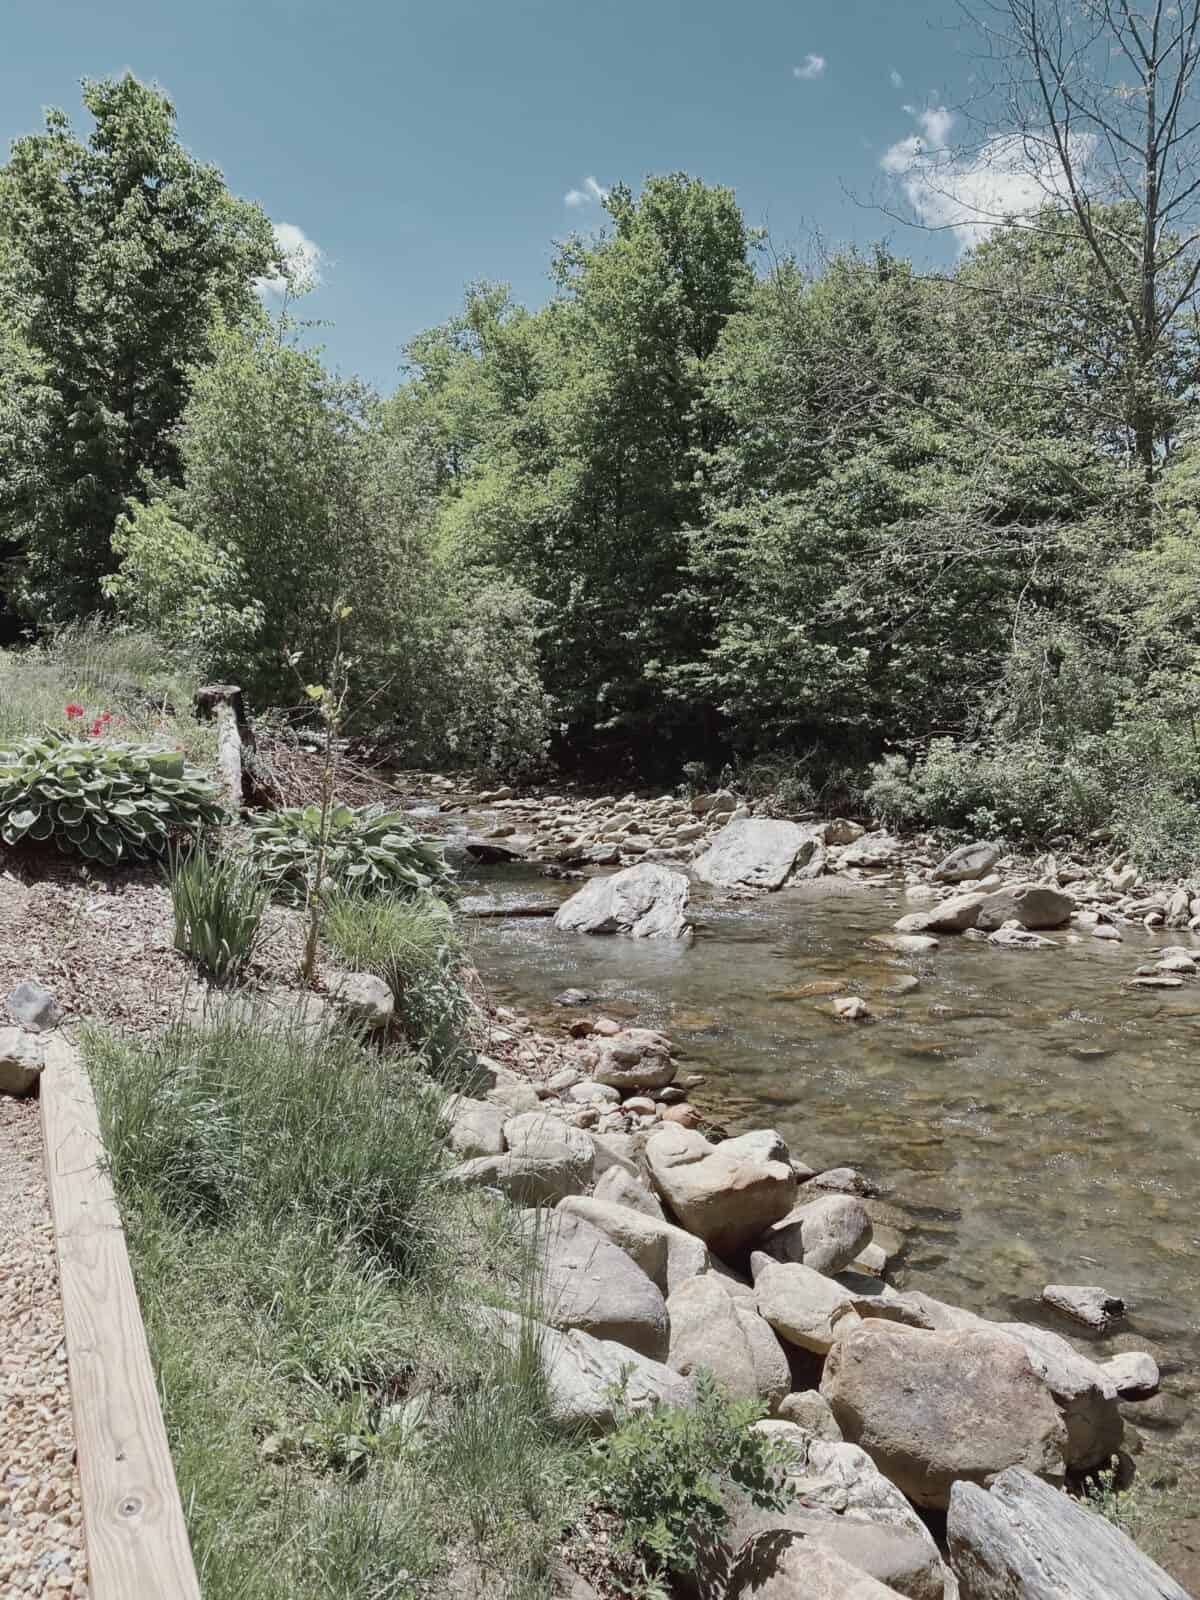 stream with rocks, trees, and blue sky